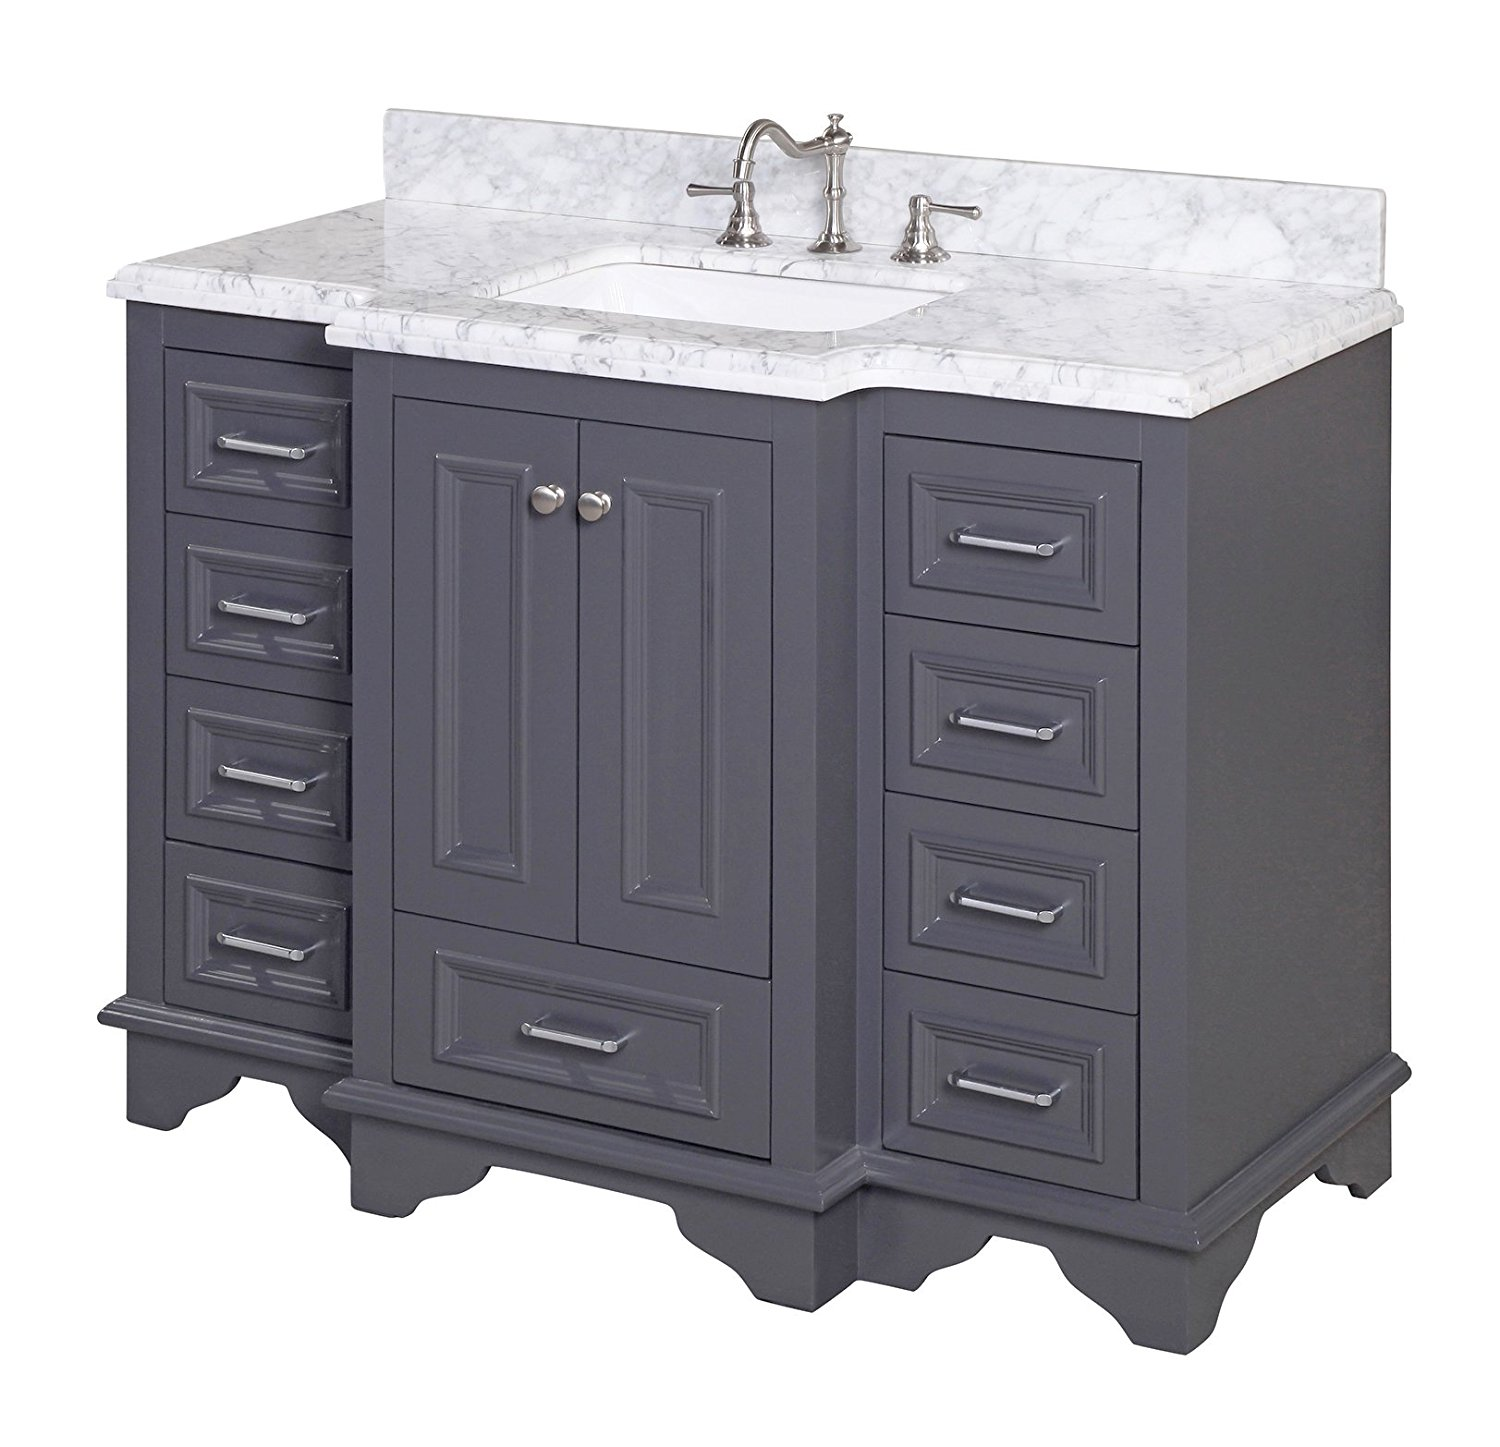 Stunning Grey Bathroom Vanity Options